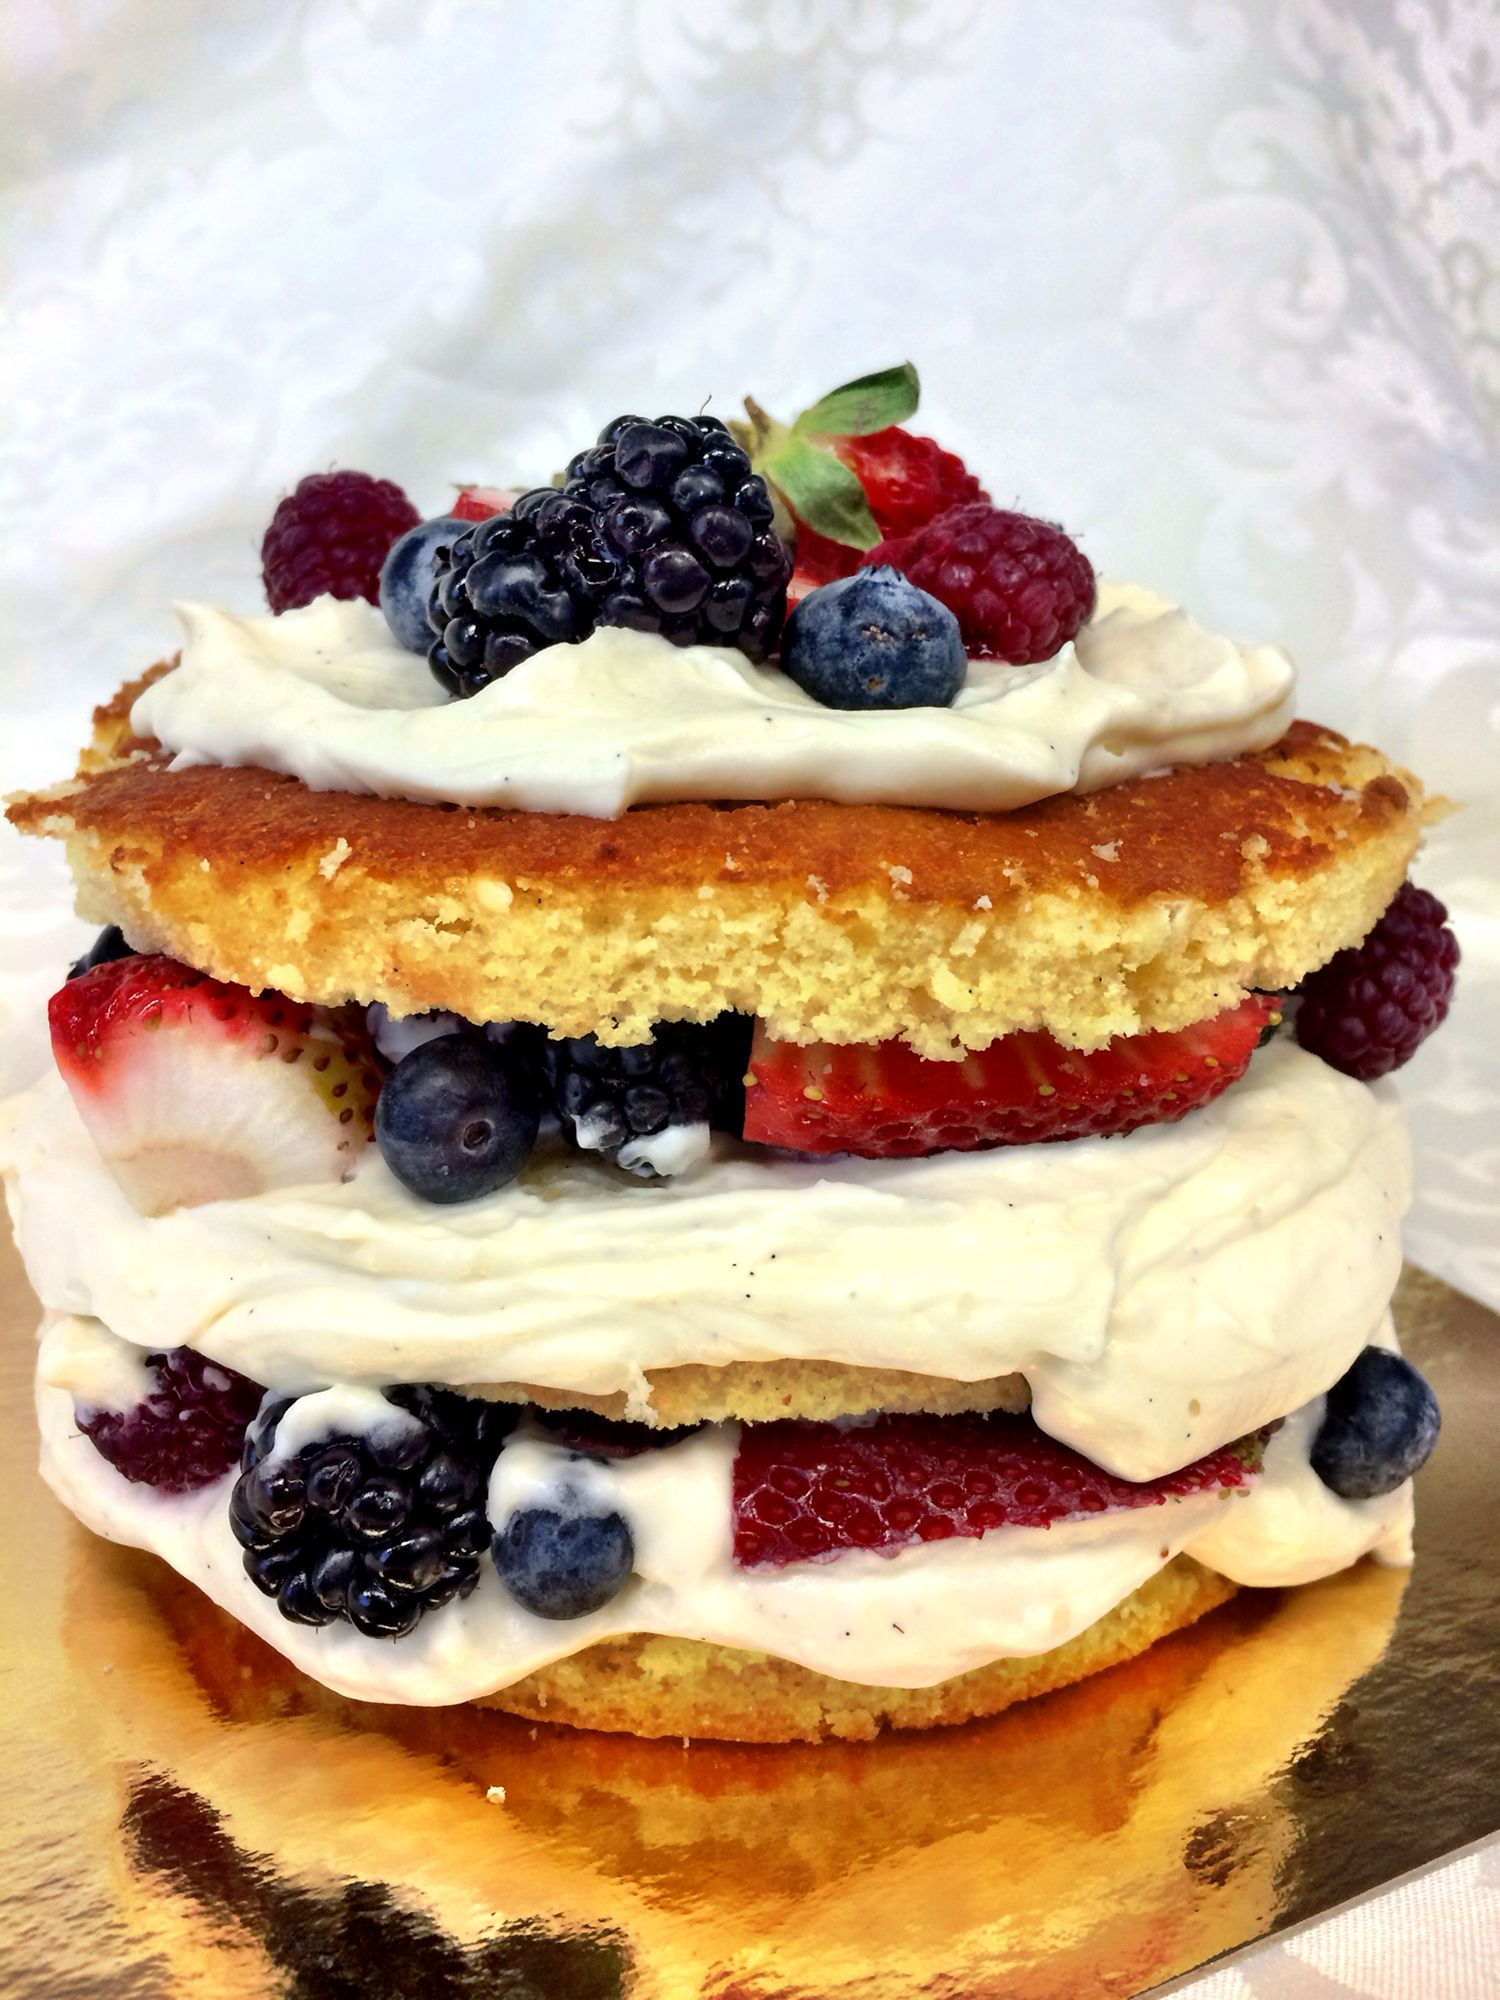 Rustic cake with pastry cream and fruit..